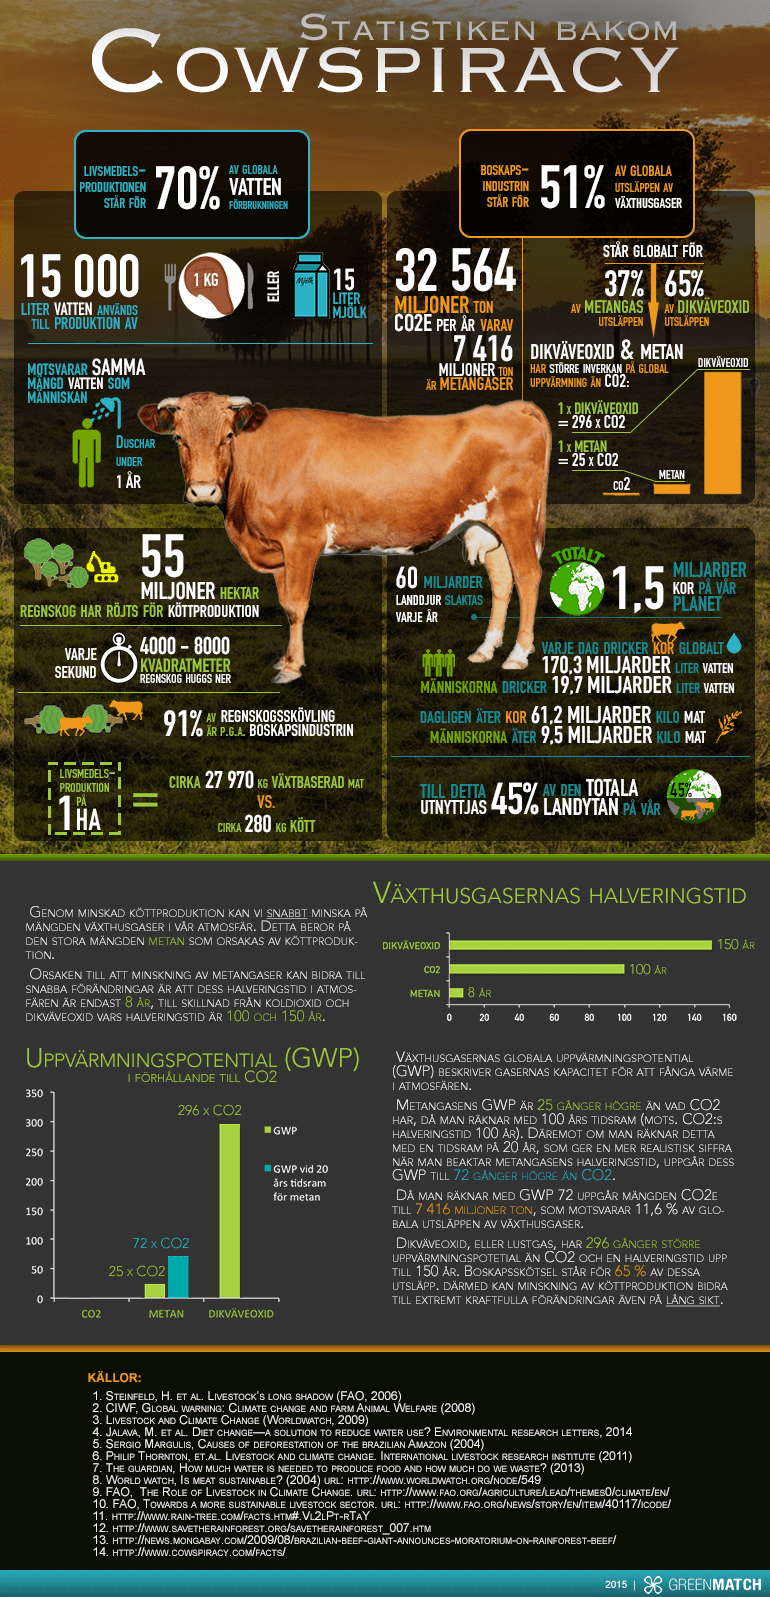 Cowspiracy_Infographic